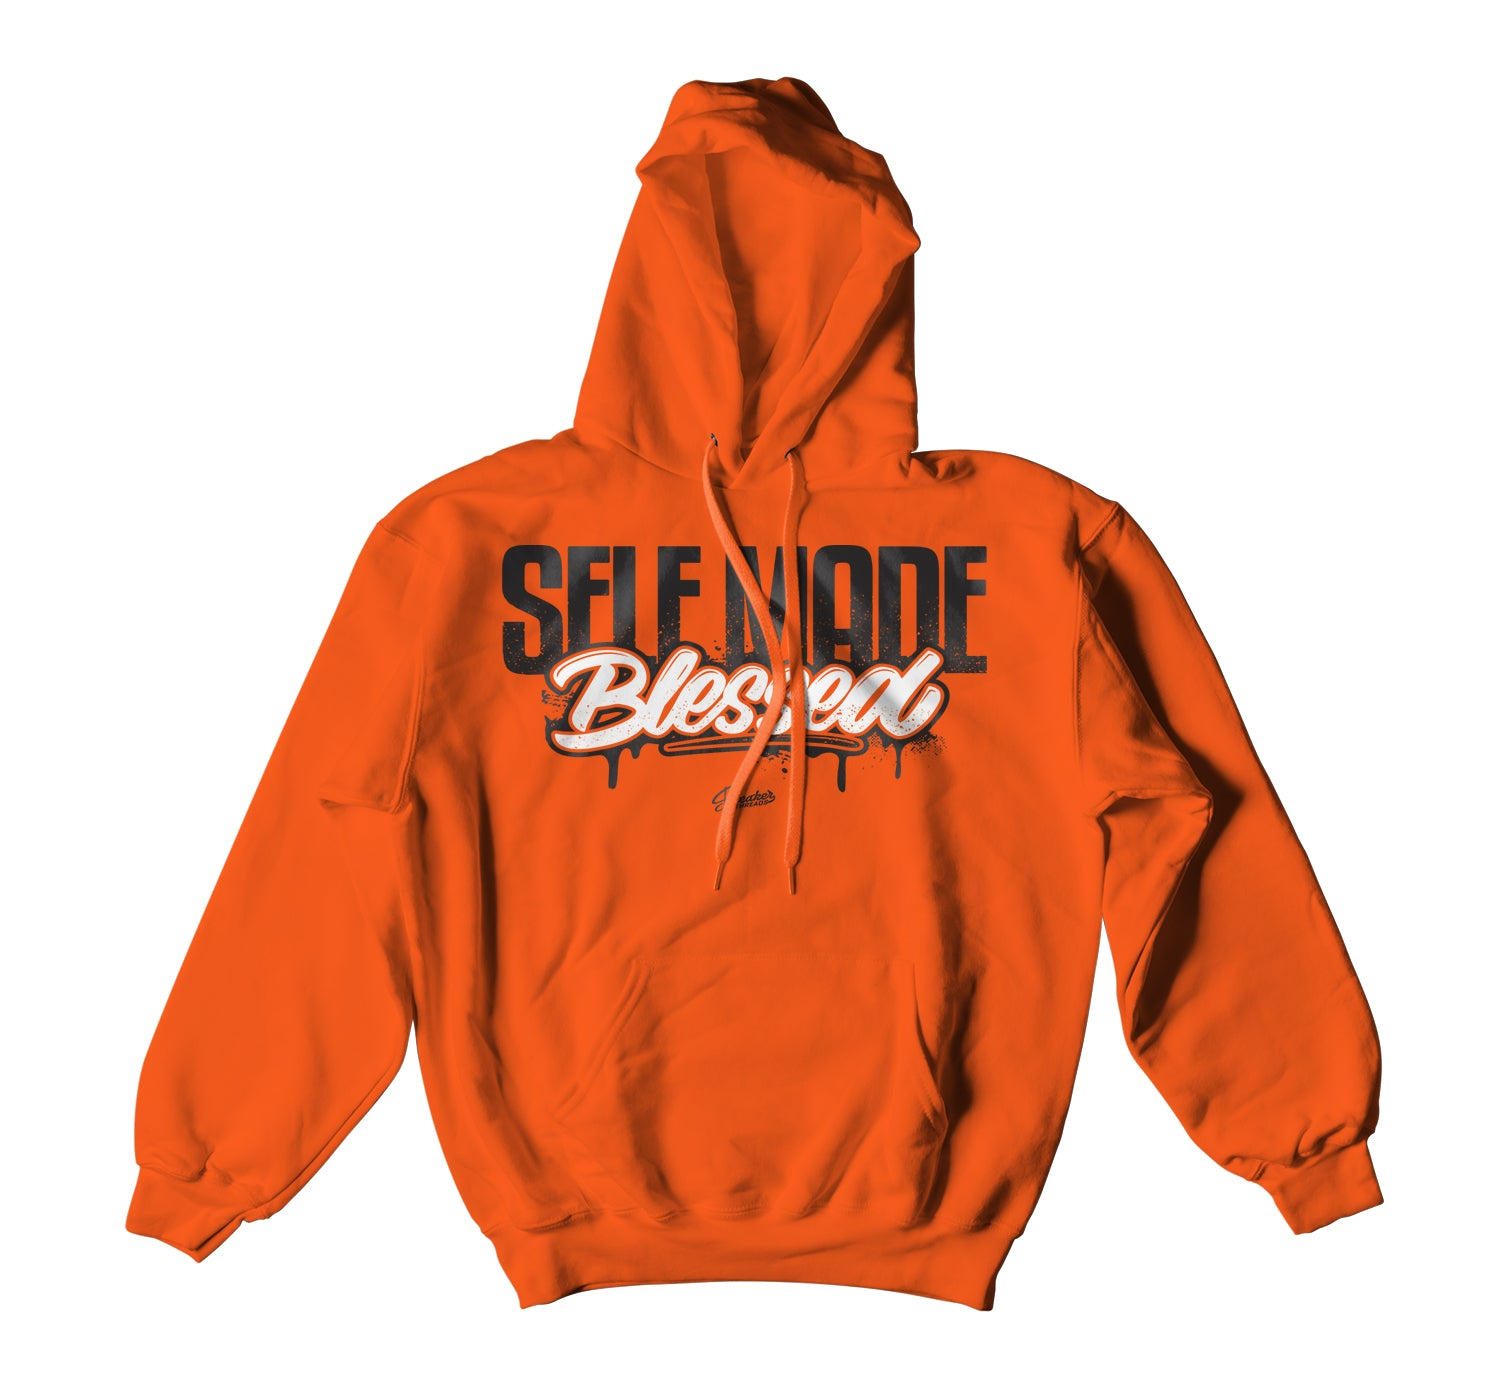 Hoodies to match Shattered backboard Foams